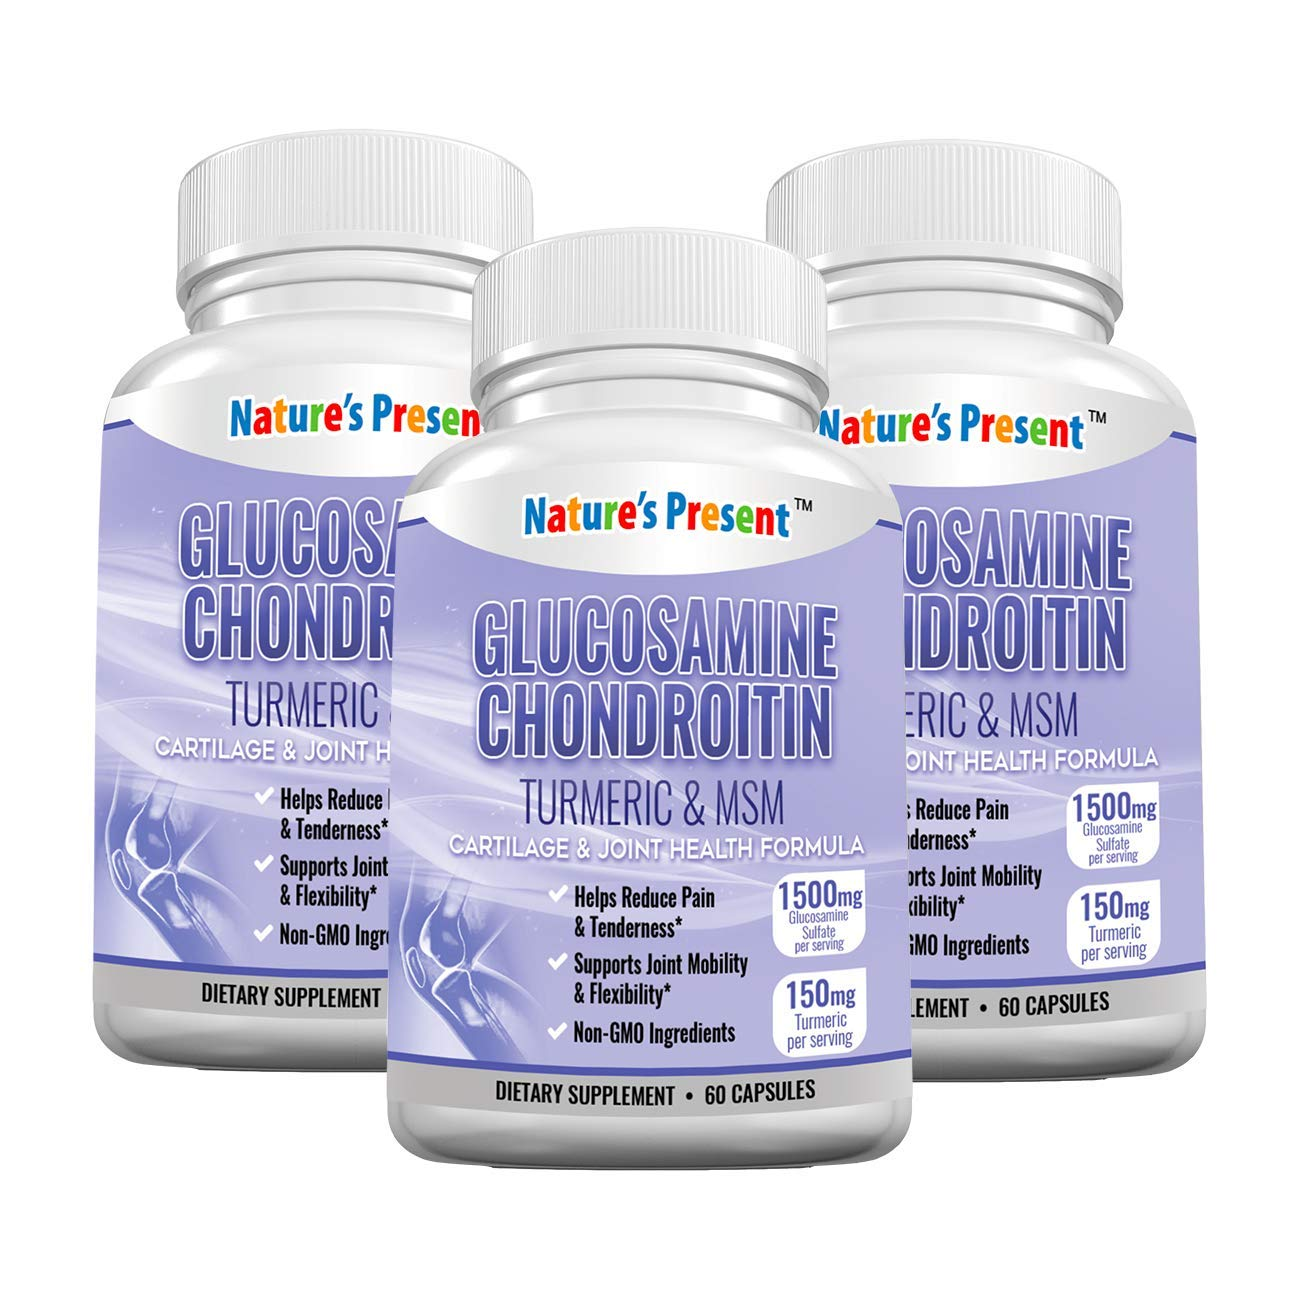 Glucosamine Chondroitin with Turmeric & MSM & Boswellia -Premium Cartilage & Joint Health Supplement for Joint Mobility, Pain Relief & Anti-Inflammatory, GMP Certificated, 180 Capsules